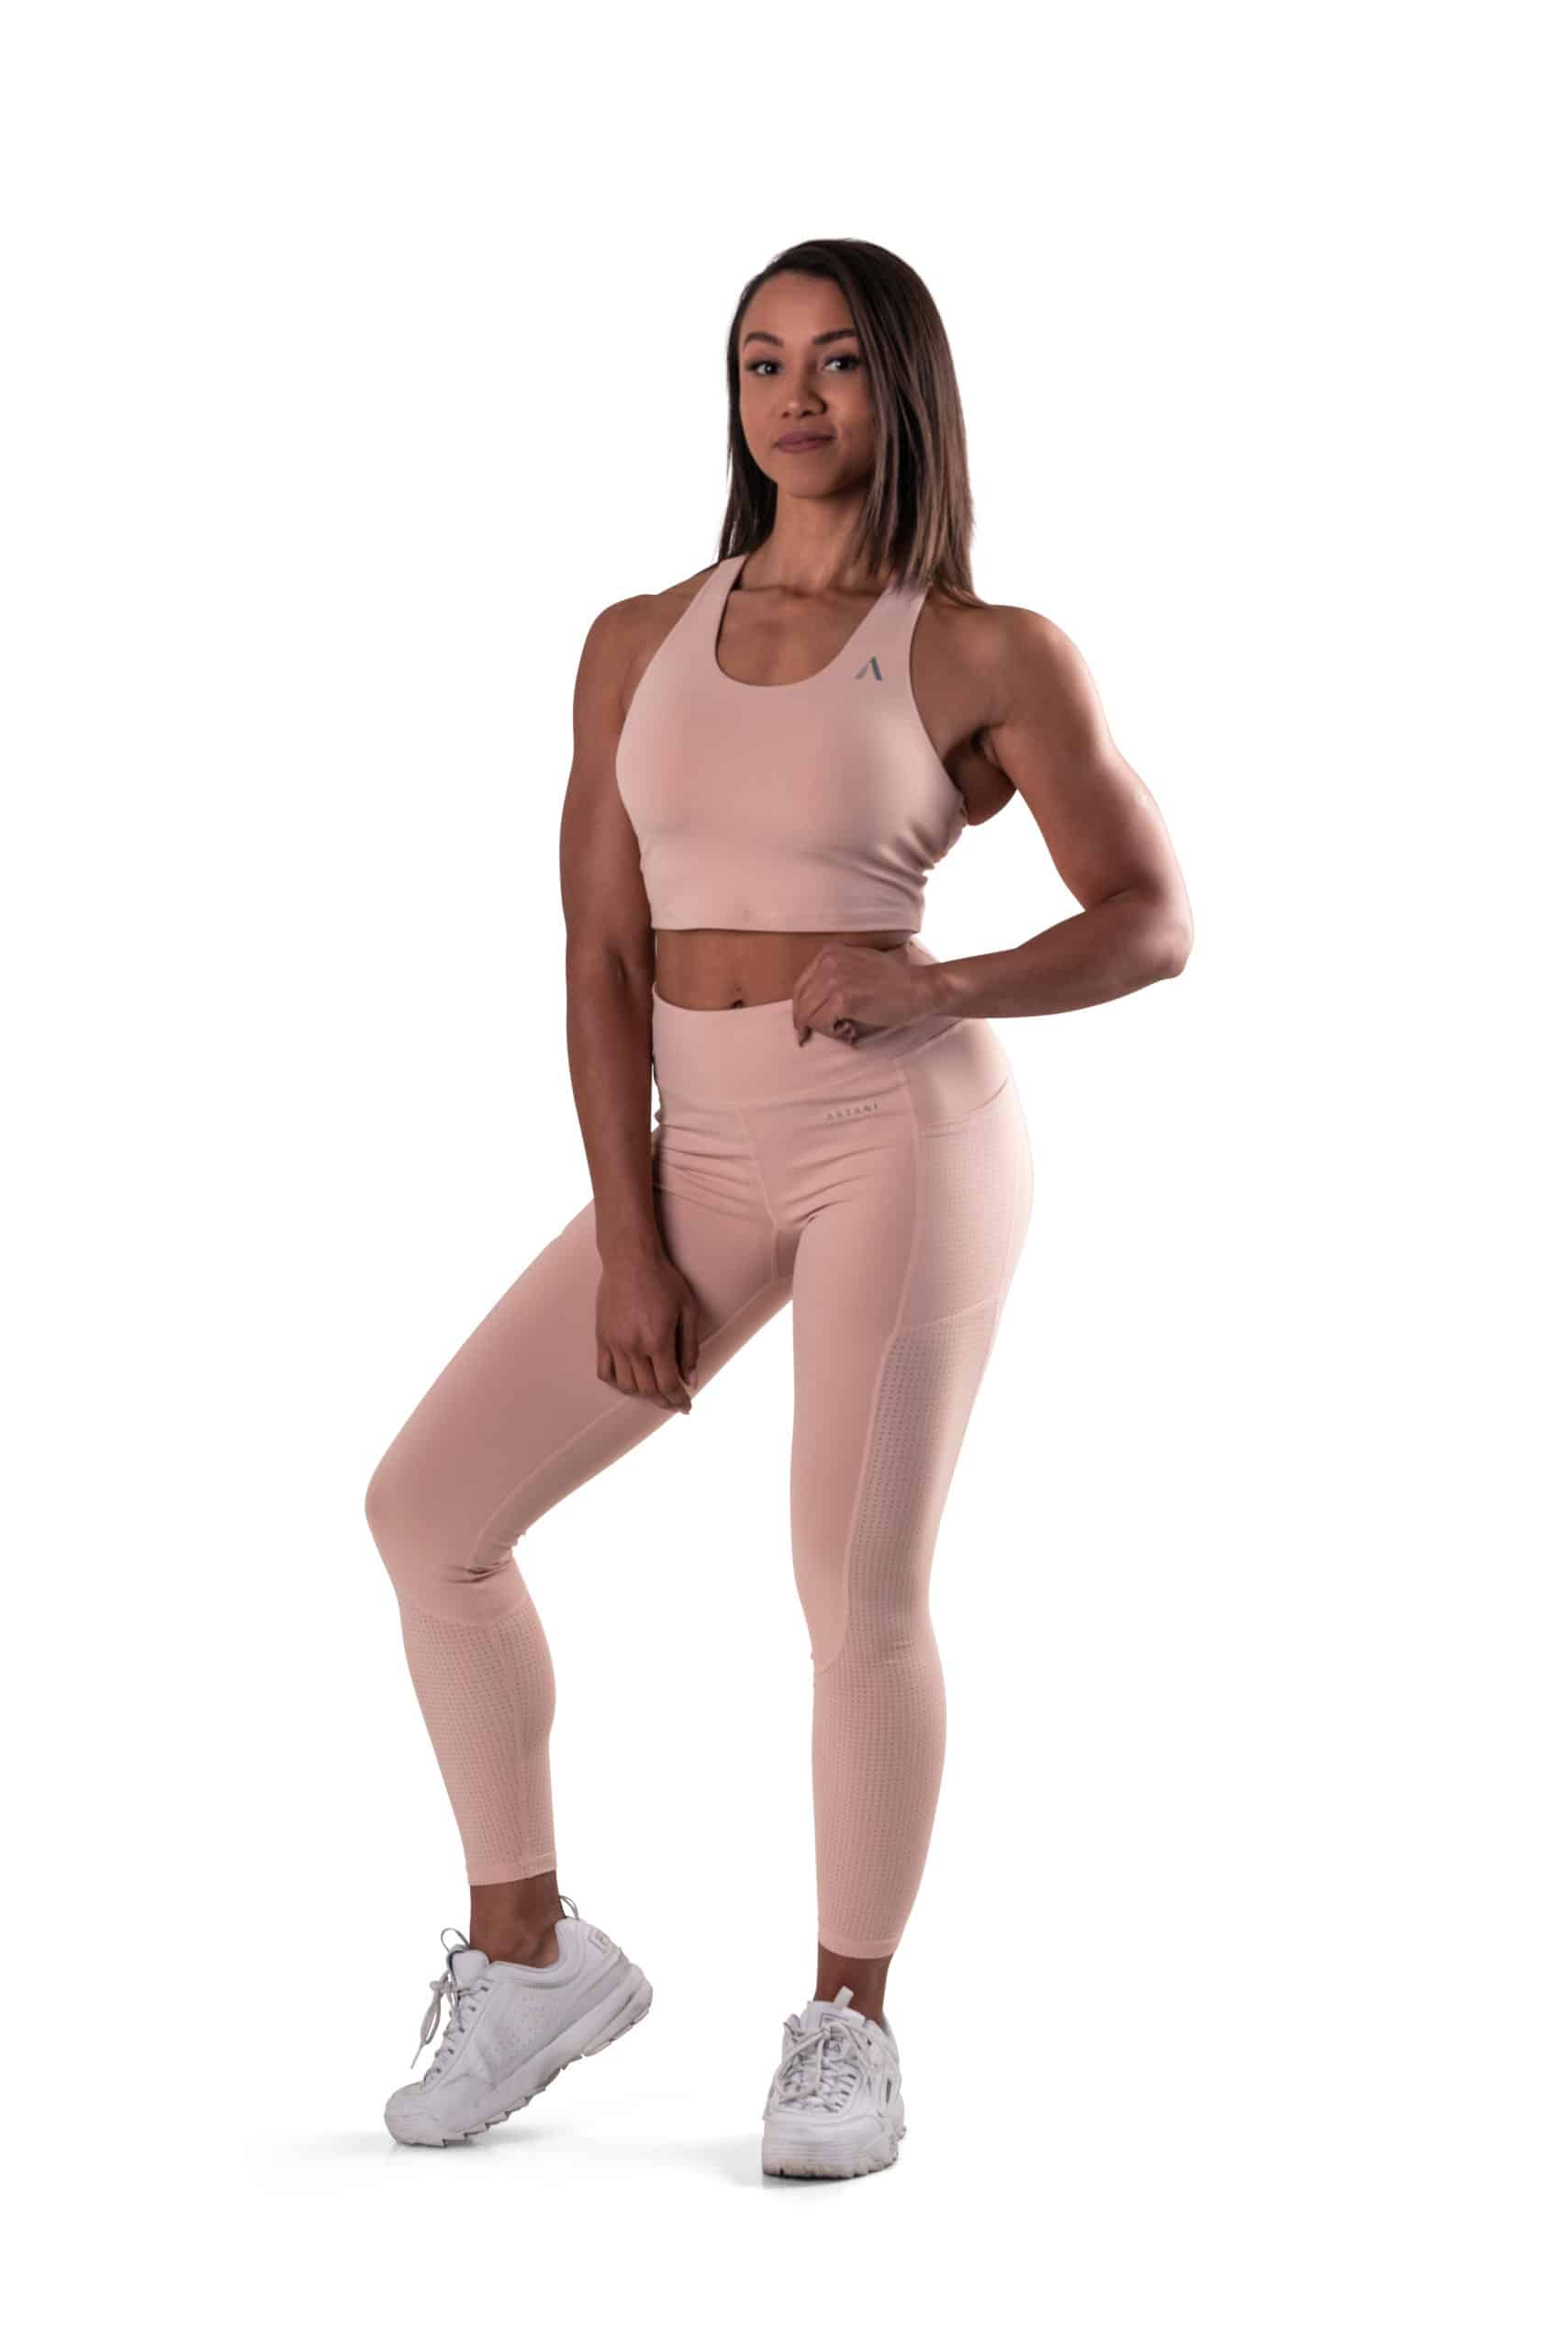 beige training set with green tights with pockets, mesh and high waist beige and crop top top top with built-in sports bra and detachable inserts with mesh